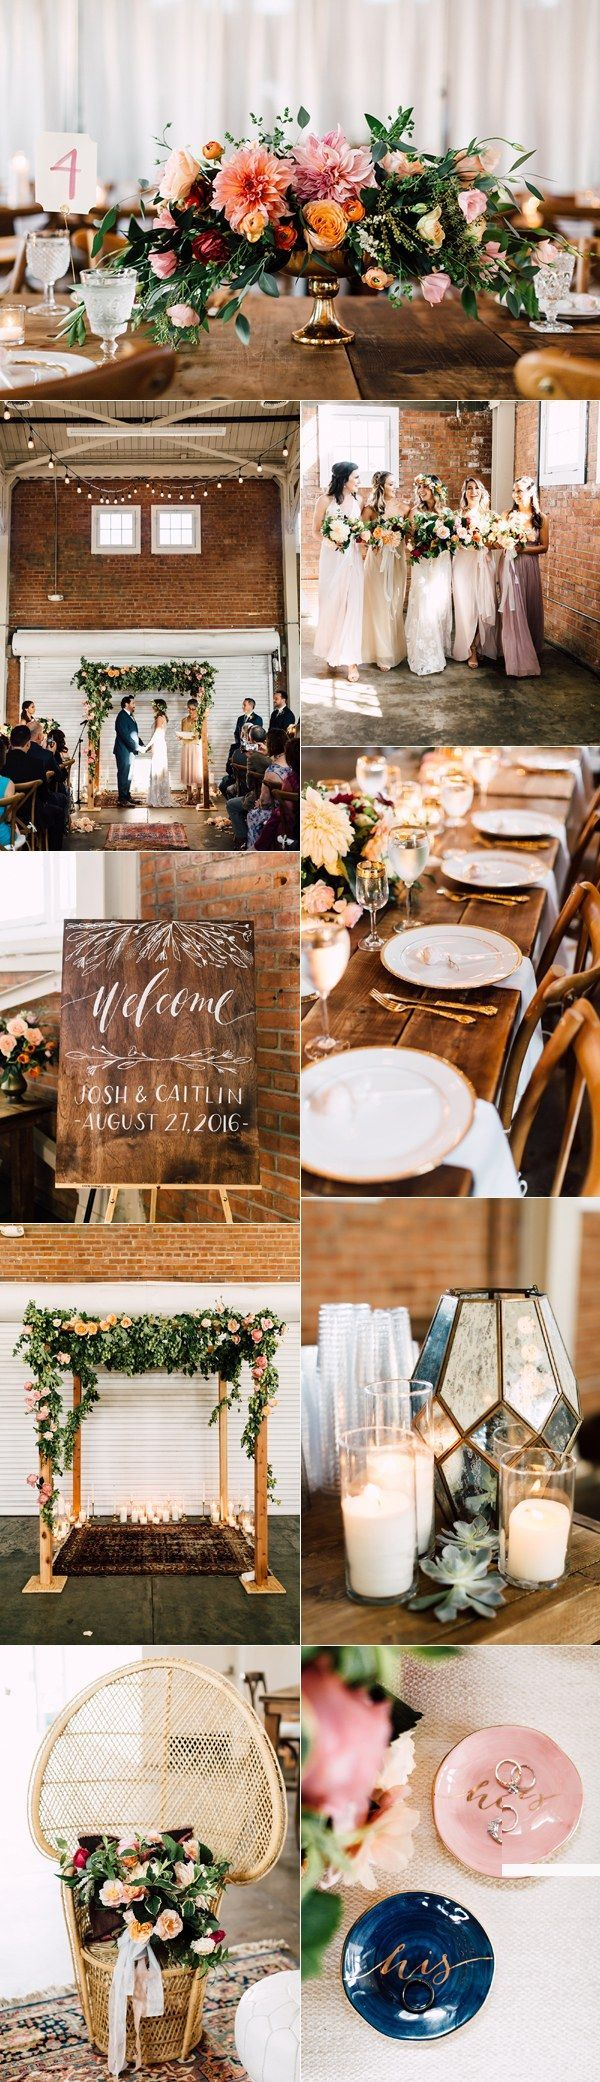 Rustic industrial wedding theme ideas / http://www.deerpearlflowers.com/industrial-wedding-theme-ideas/